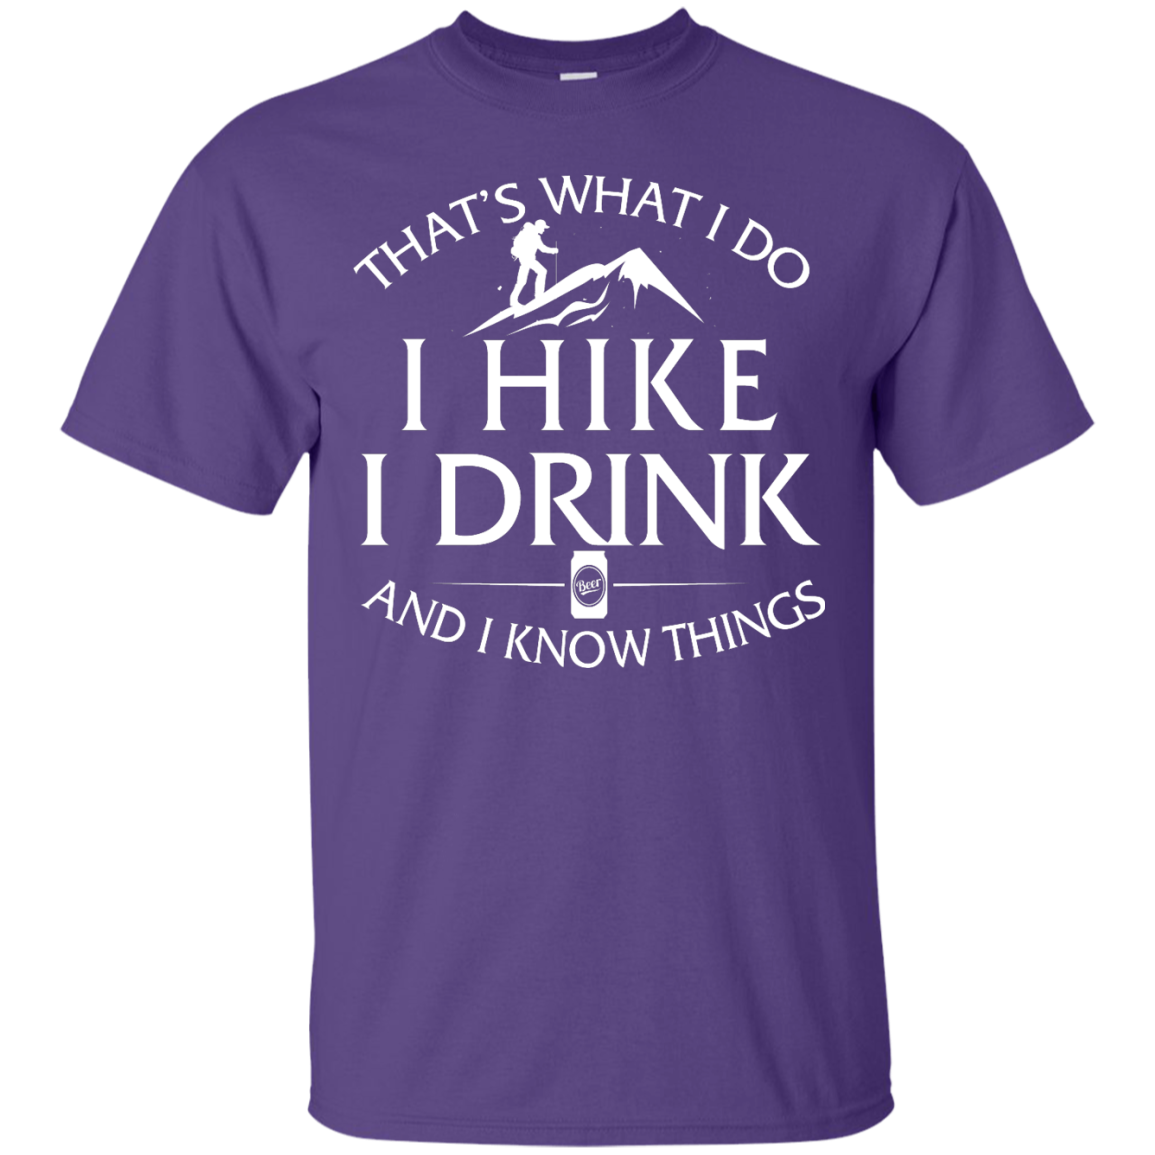 Hiking T-Shirt: That's What I Do I Hike I Drink and I Know Things